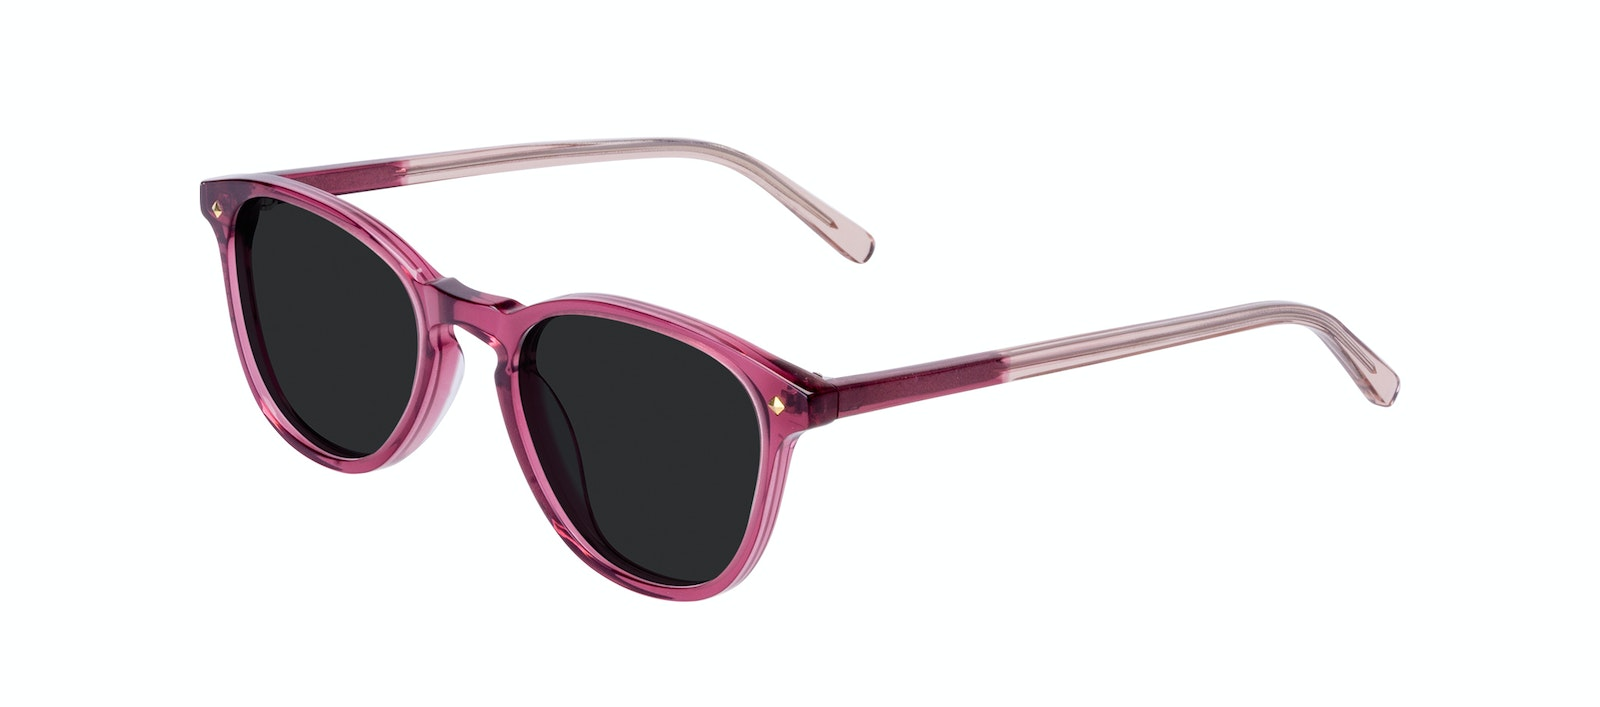 Affordable Fashion Glasses Round Sunglasses Women Crush Berry Tilt